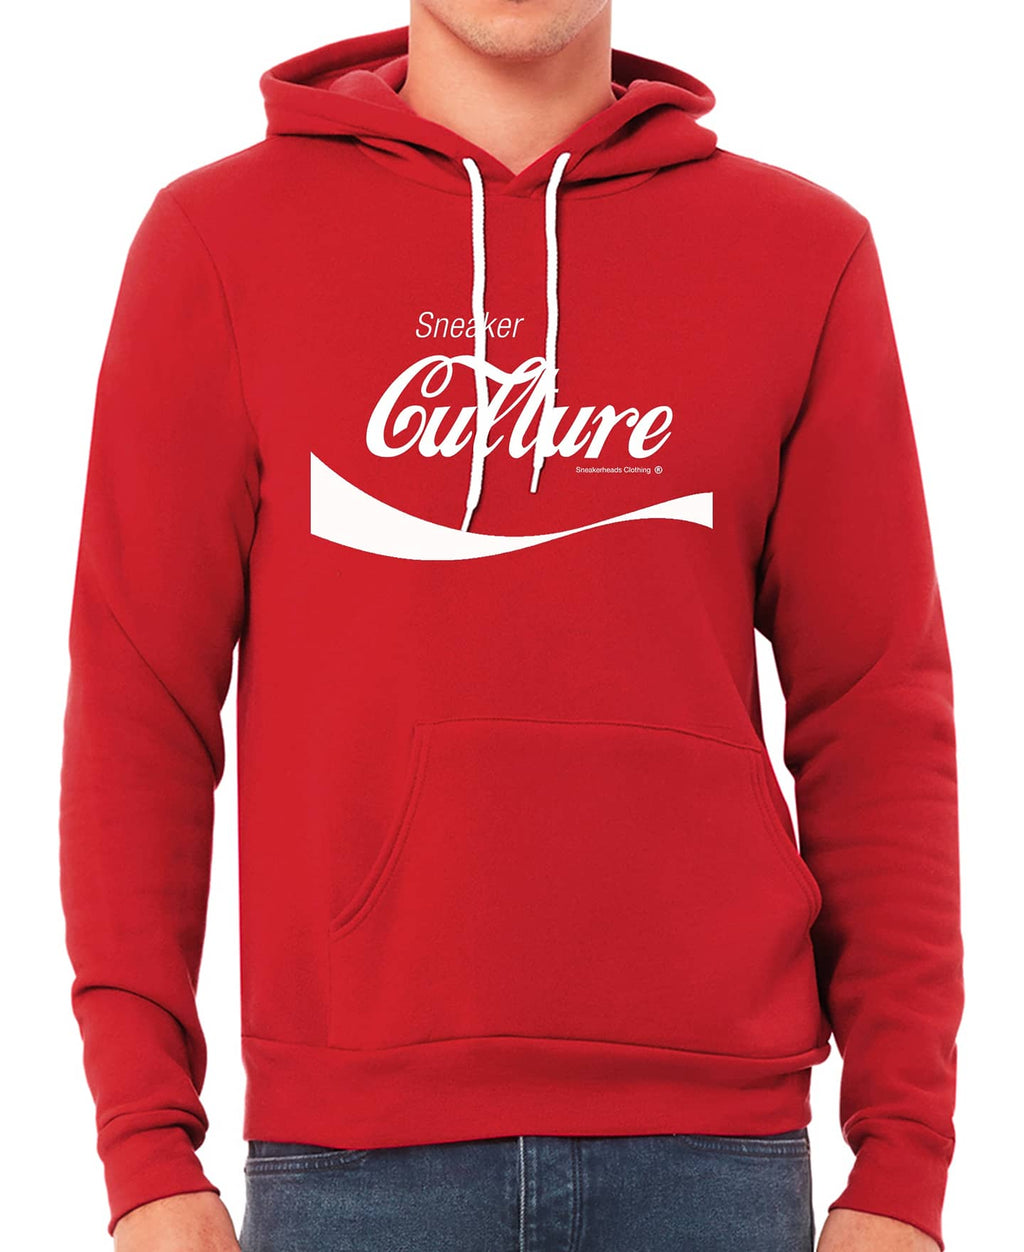 "Exclusive ""SNEAKER Culture"" LE Hoodies - SNEAKERHEADS CLOTHING LINE"